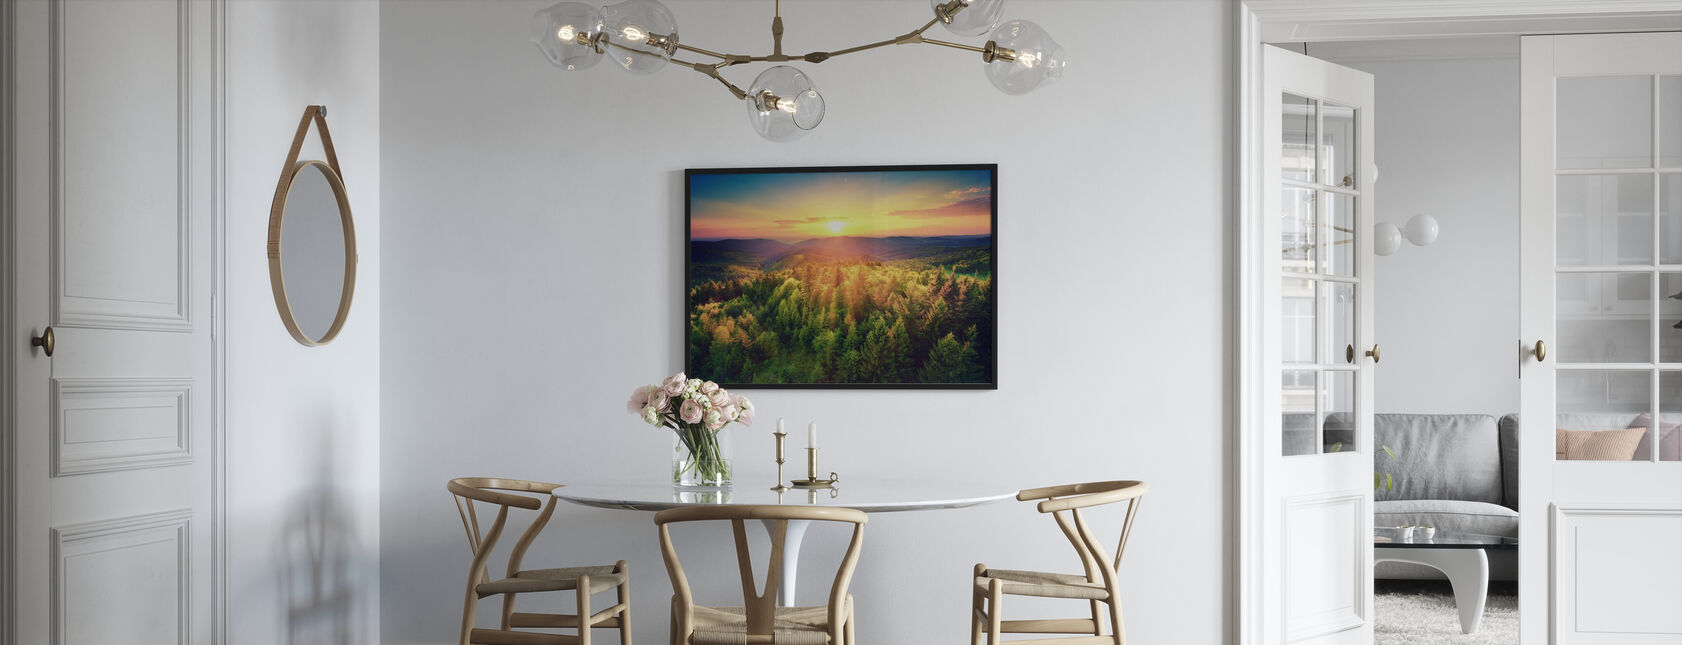 Sunset Over the Forest - Framed print - Kitchen